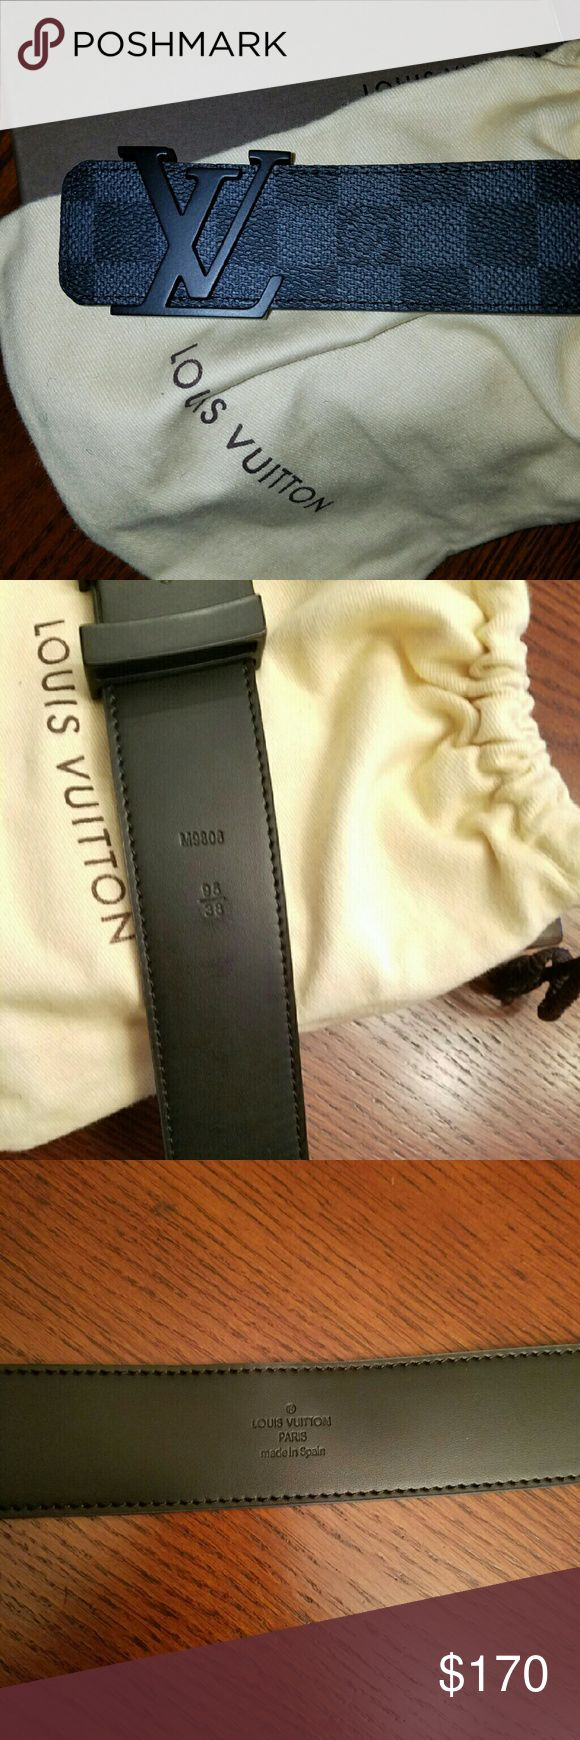 100% AUTHENTIC LOUIS VUITTON DAMIER GRAPHITE Men's black and grey Damier Graphite coated canvas Louis Vuitton Initiales belt with black laquer logo buckle and push throughout closures at front. Very new and 100 percent authentic. Sizes 34 and up. Thanks and enjoy . Louis Vuitton Accessories Belts